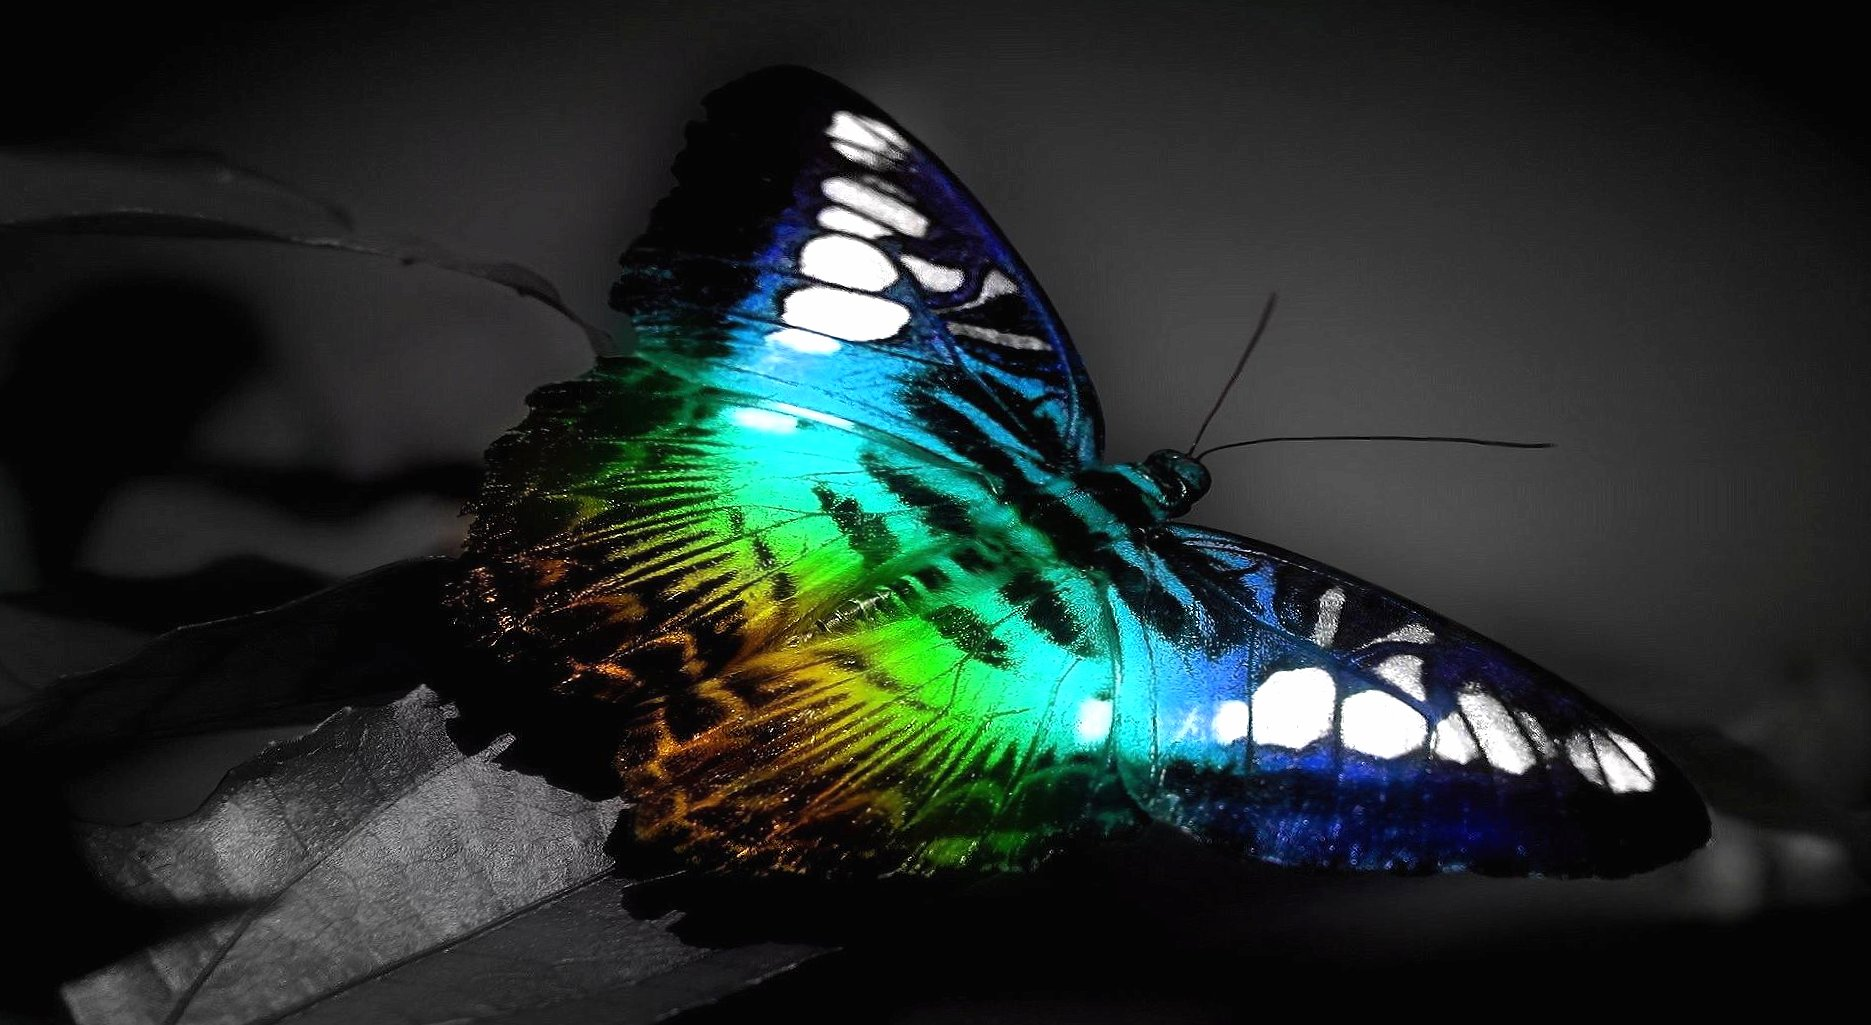 Butterfly fullcolour at 1280 x 960 size wallpapers HD quality